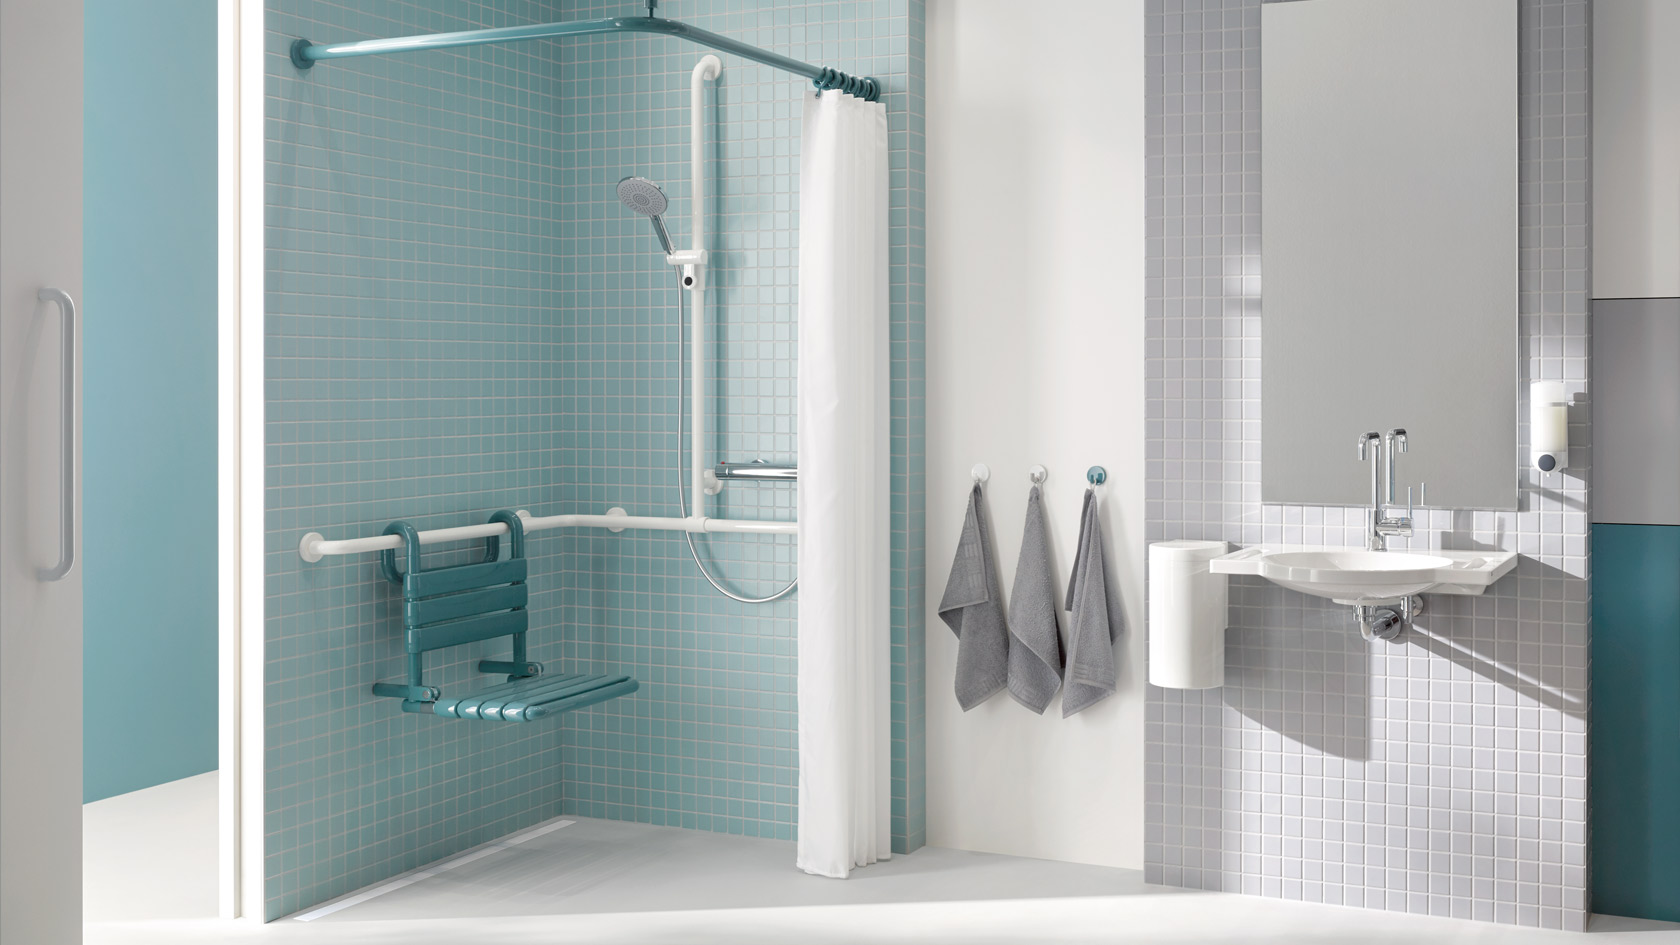 HEWI system solutions for bathrooms and sanitary rooms | Accessible ...